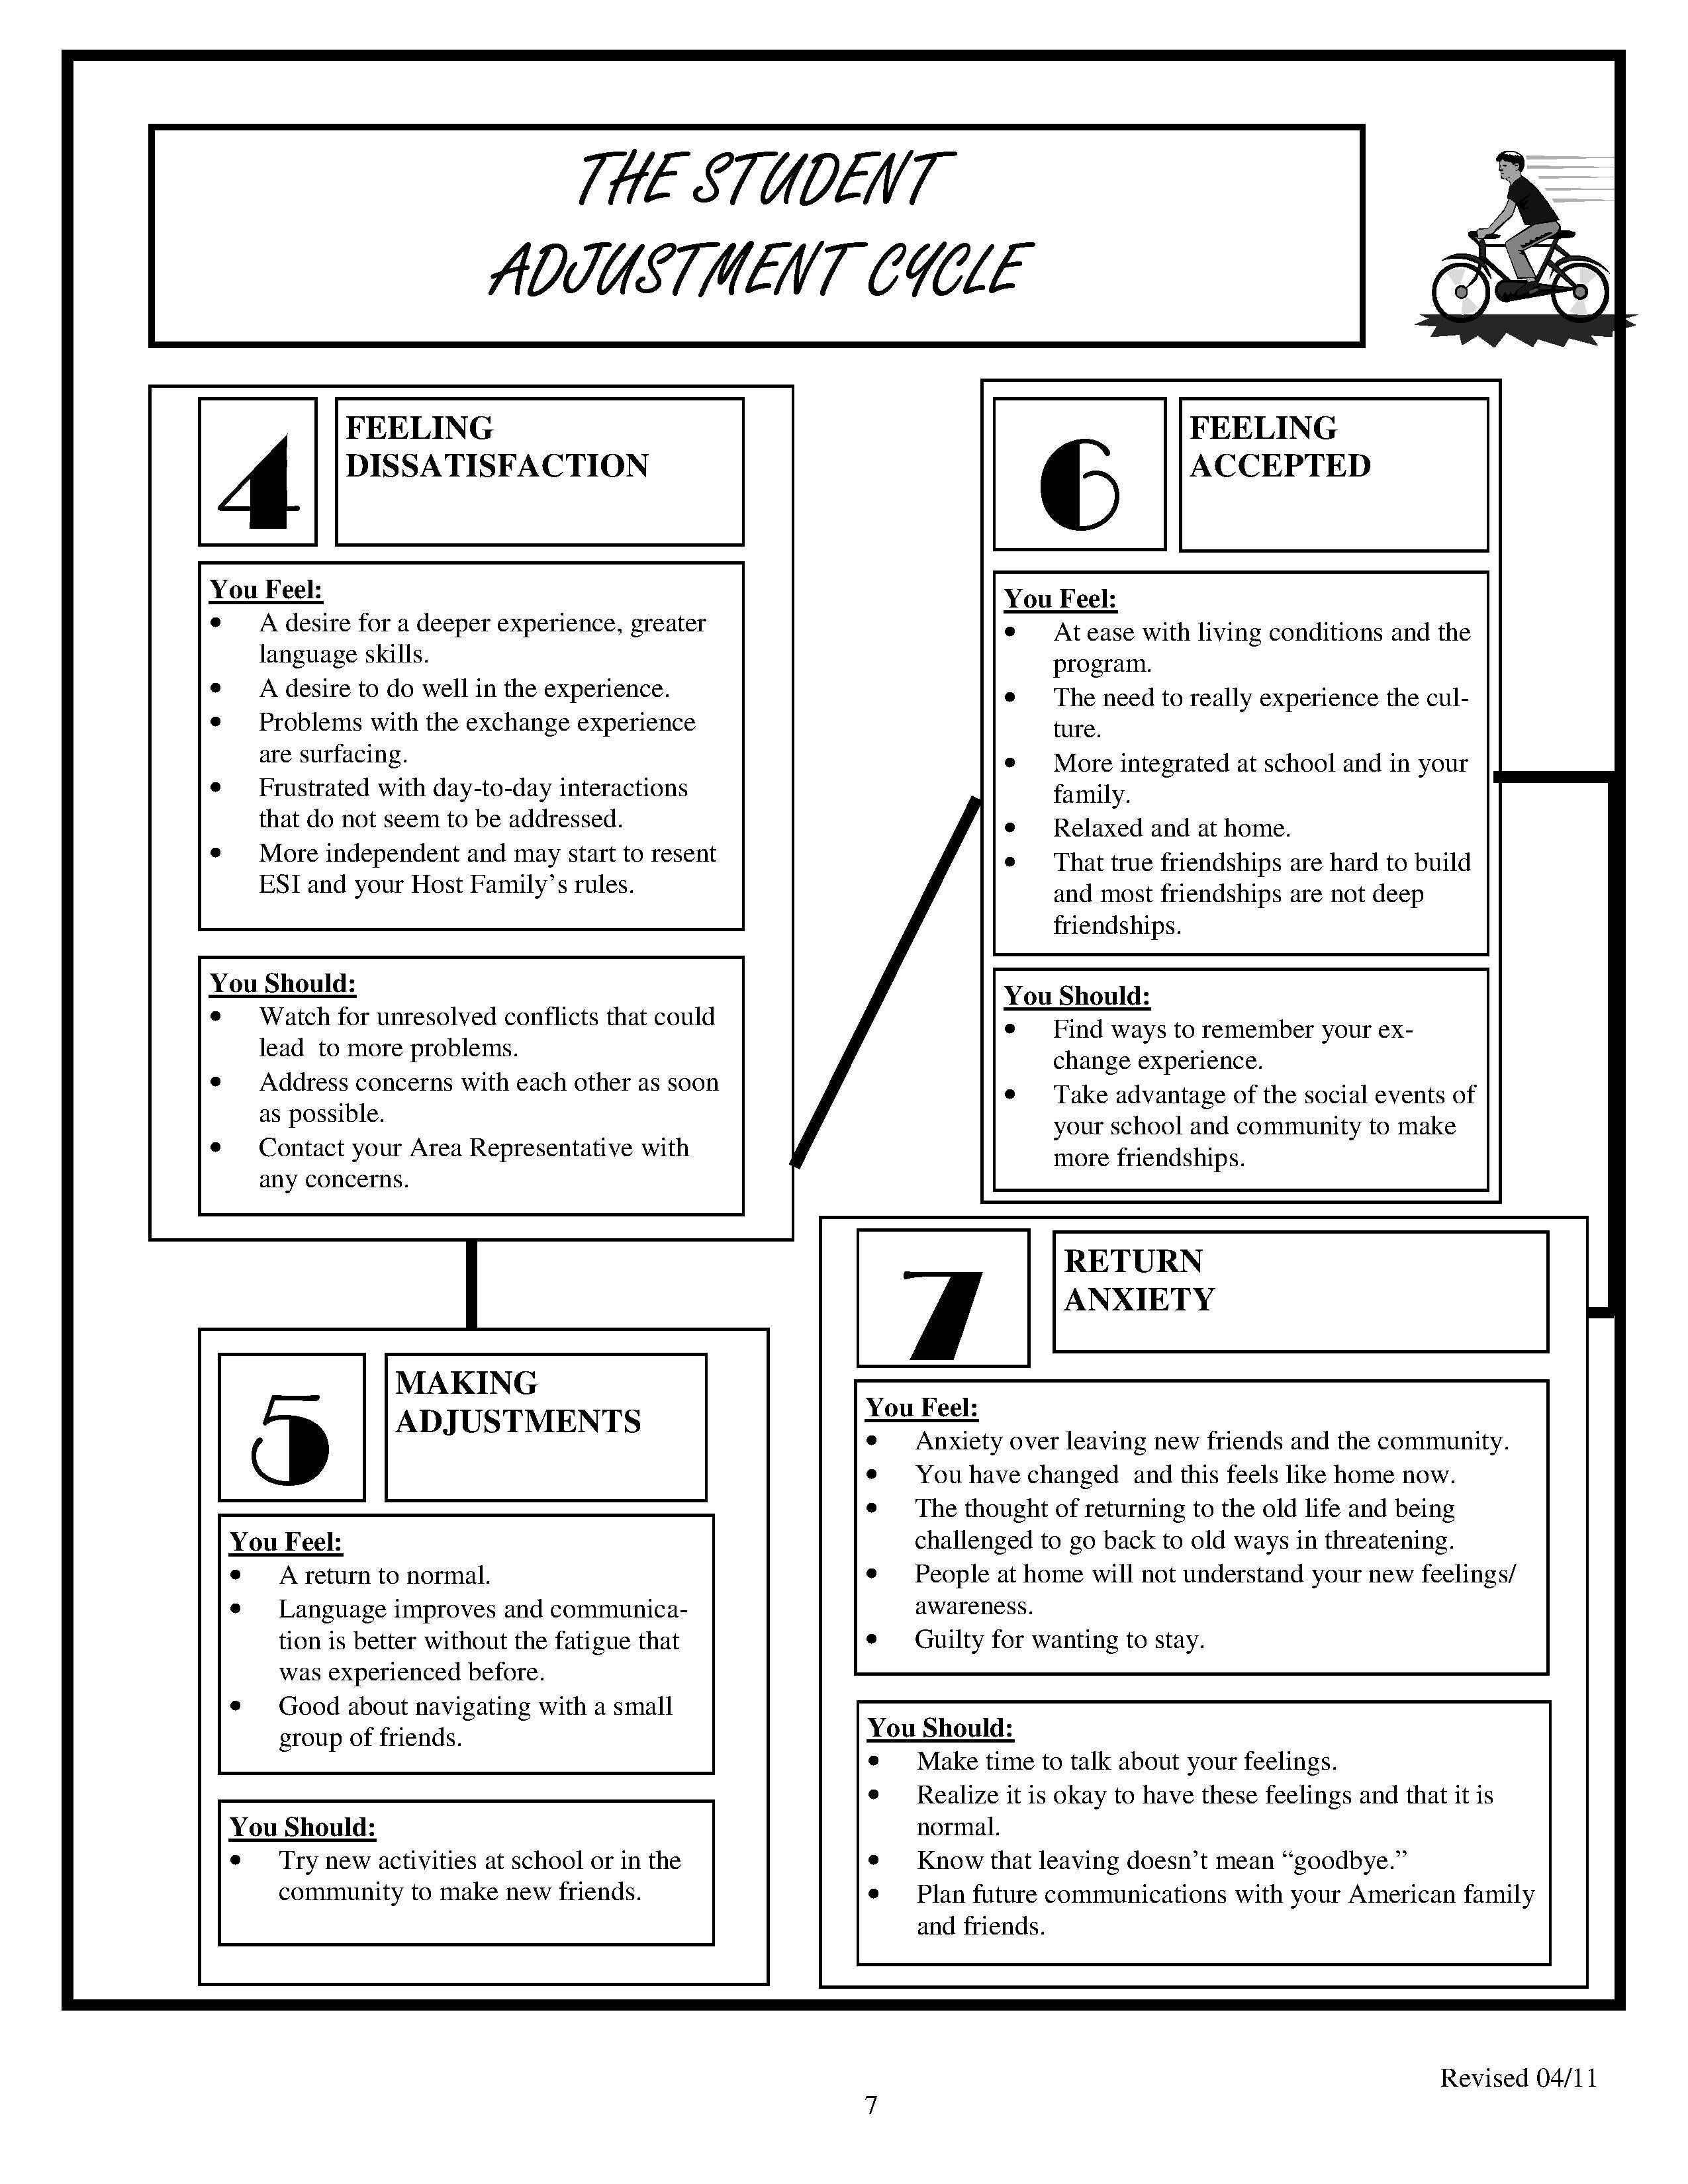 Student Adjustment Cycle page 2